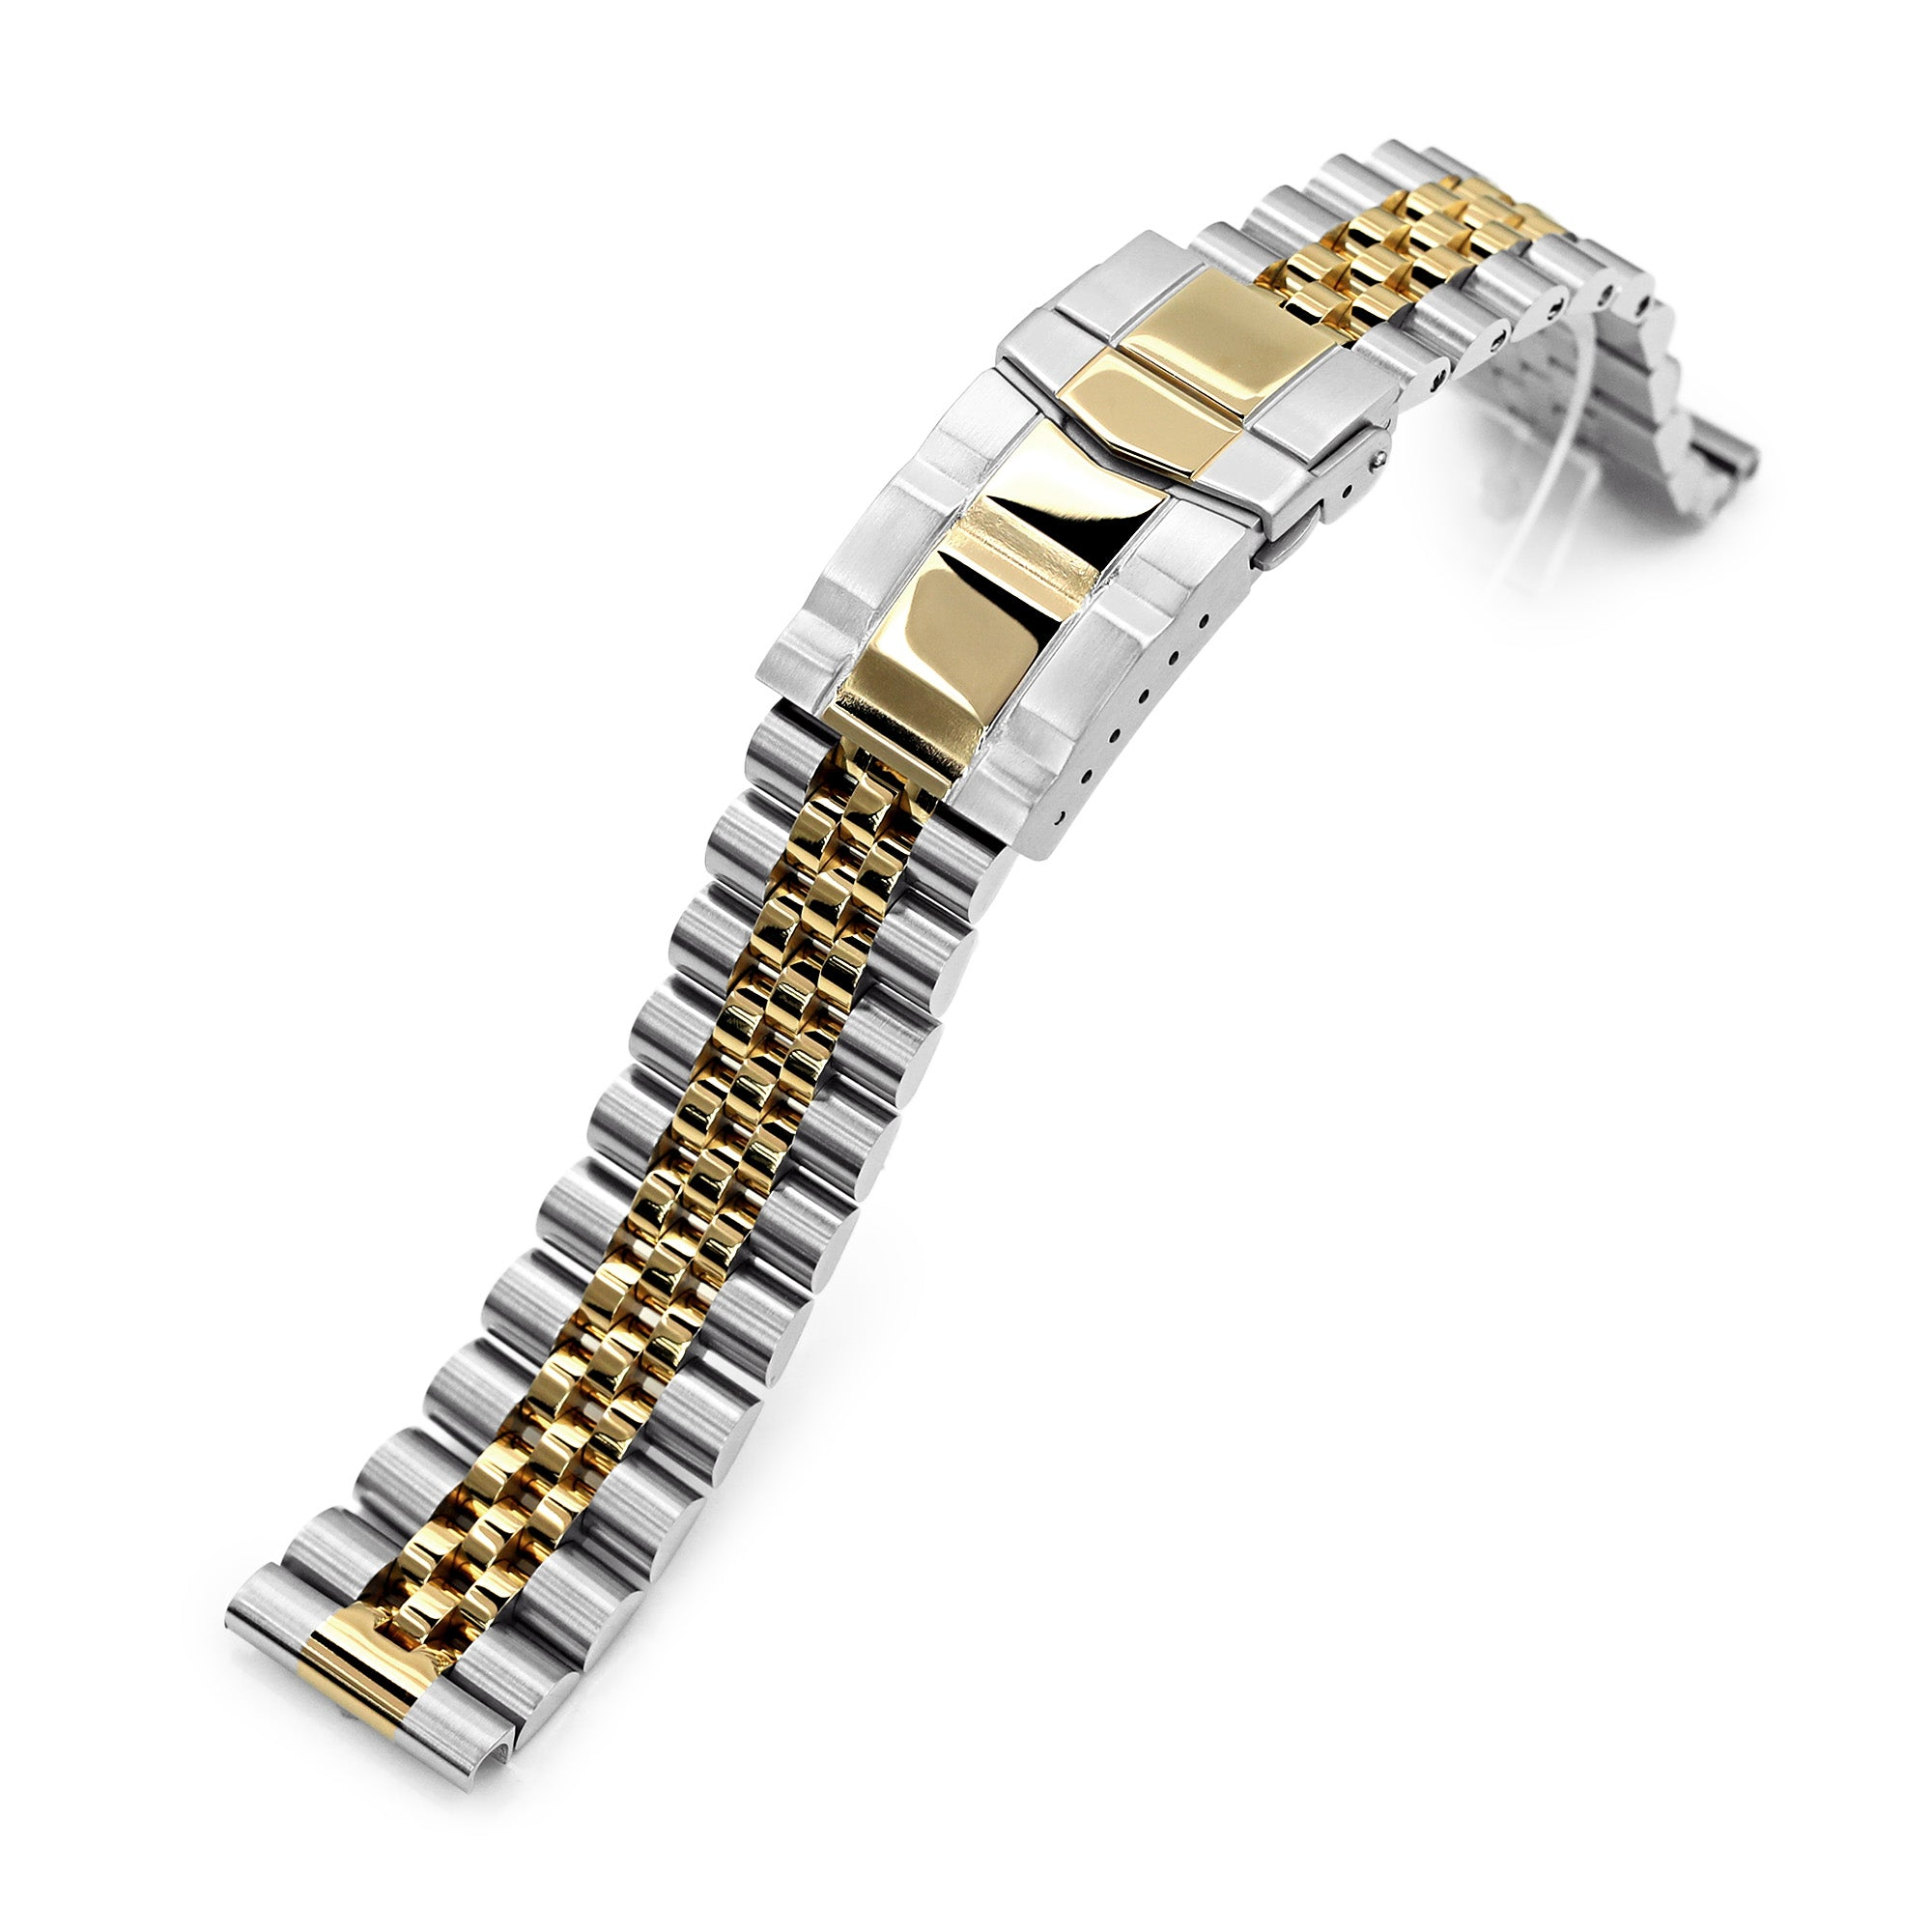 20mm Super-J Louis JUB 316L Stainless Steel Watch Bracelet Straight End, Two Tone IP Gold, SUB Clasp Strapcode Watch Bands